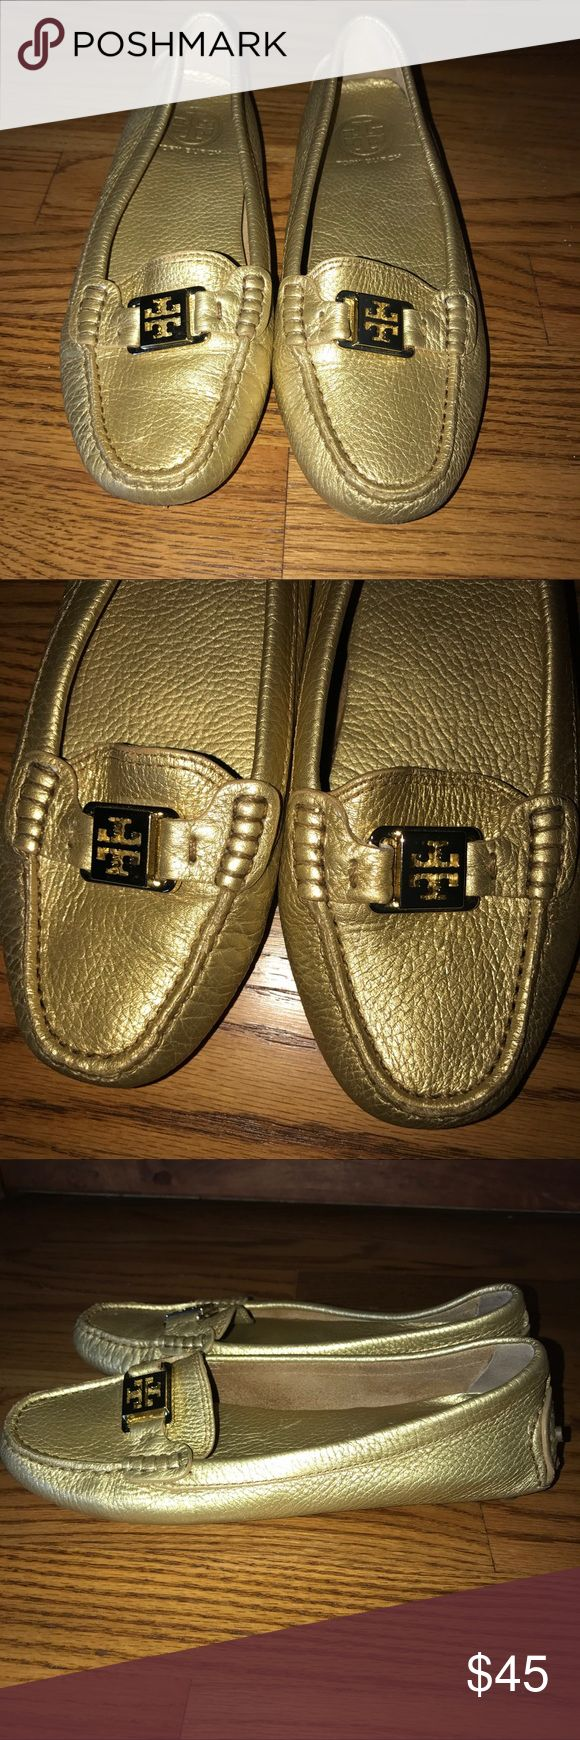 Tory Burch Driving Loafer Tory Burch driving loafer in a gold color.  These shoes have been worn and have a little scuffing of the leather in the front of both shoes, which is shown in the pictures.  The scuffs are not noticeable when shoes are on.  Size 7.5. Tory Burch Shoes Flats & Loafers